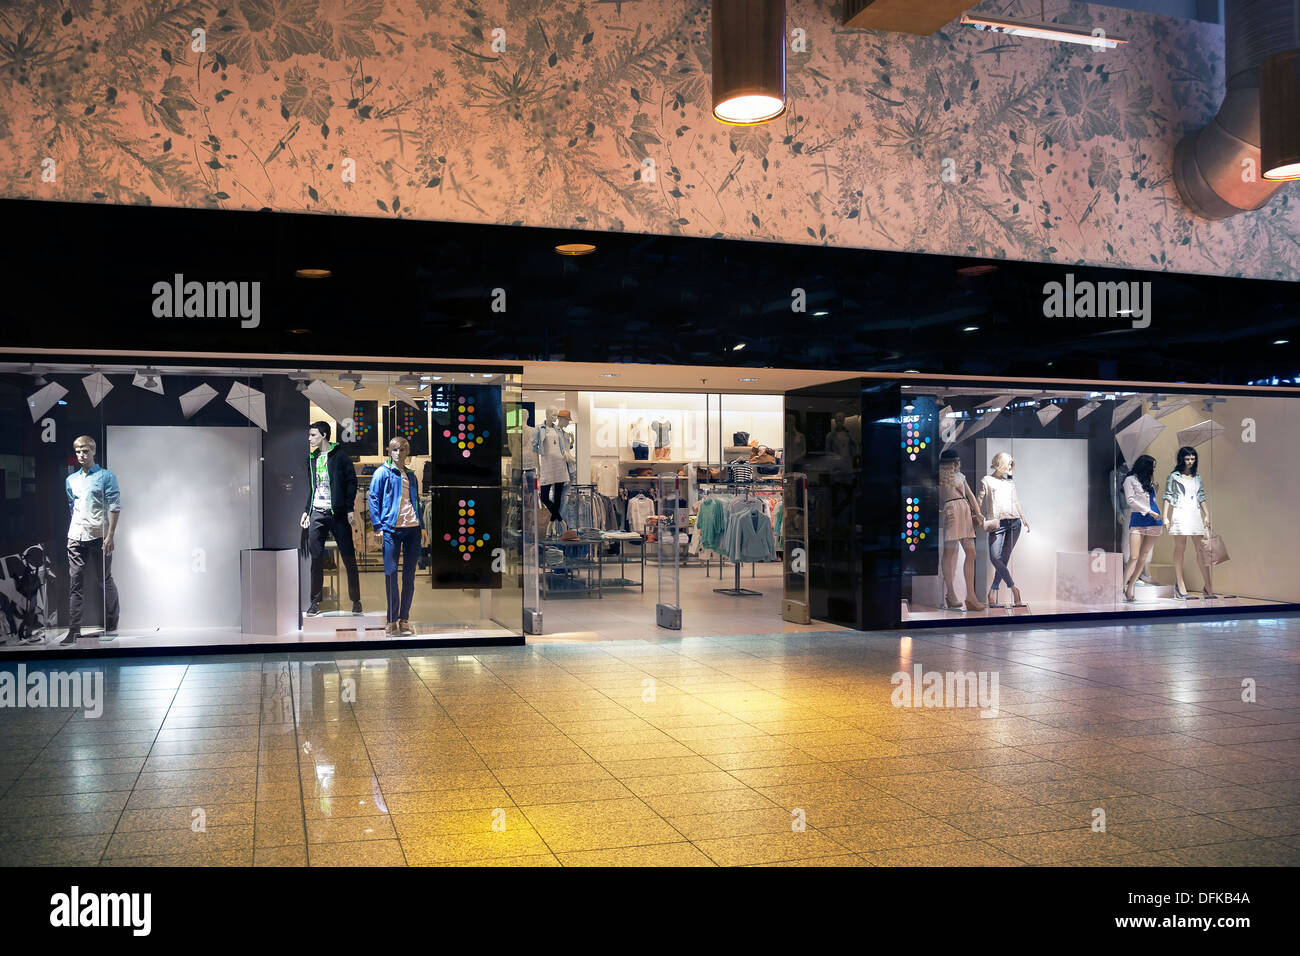 Retail shop entrance or exit. Facade of shop with display. Mannequin, dummy. - Stock Image